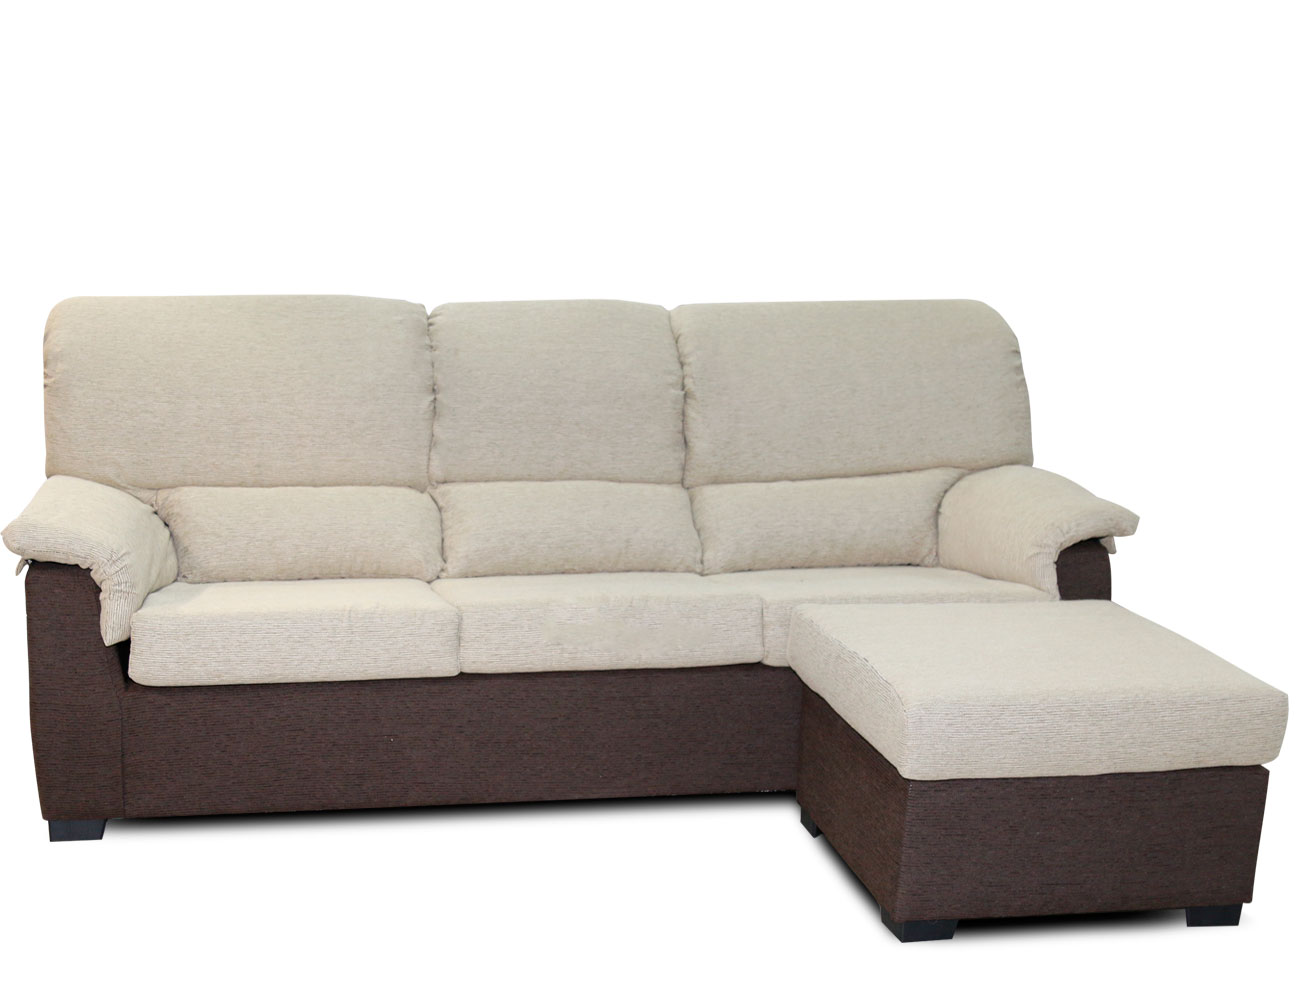 Sof chaiselongue barato con puf reversible 15285 for Muebles baratos online